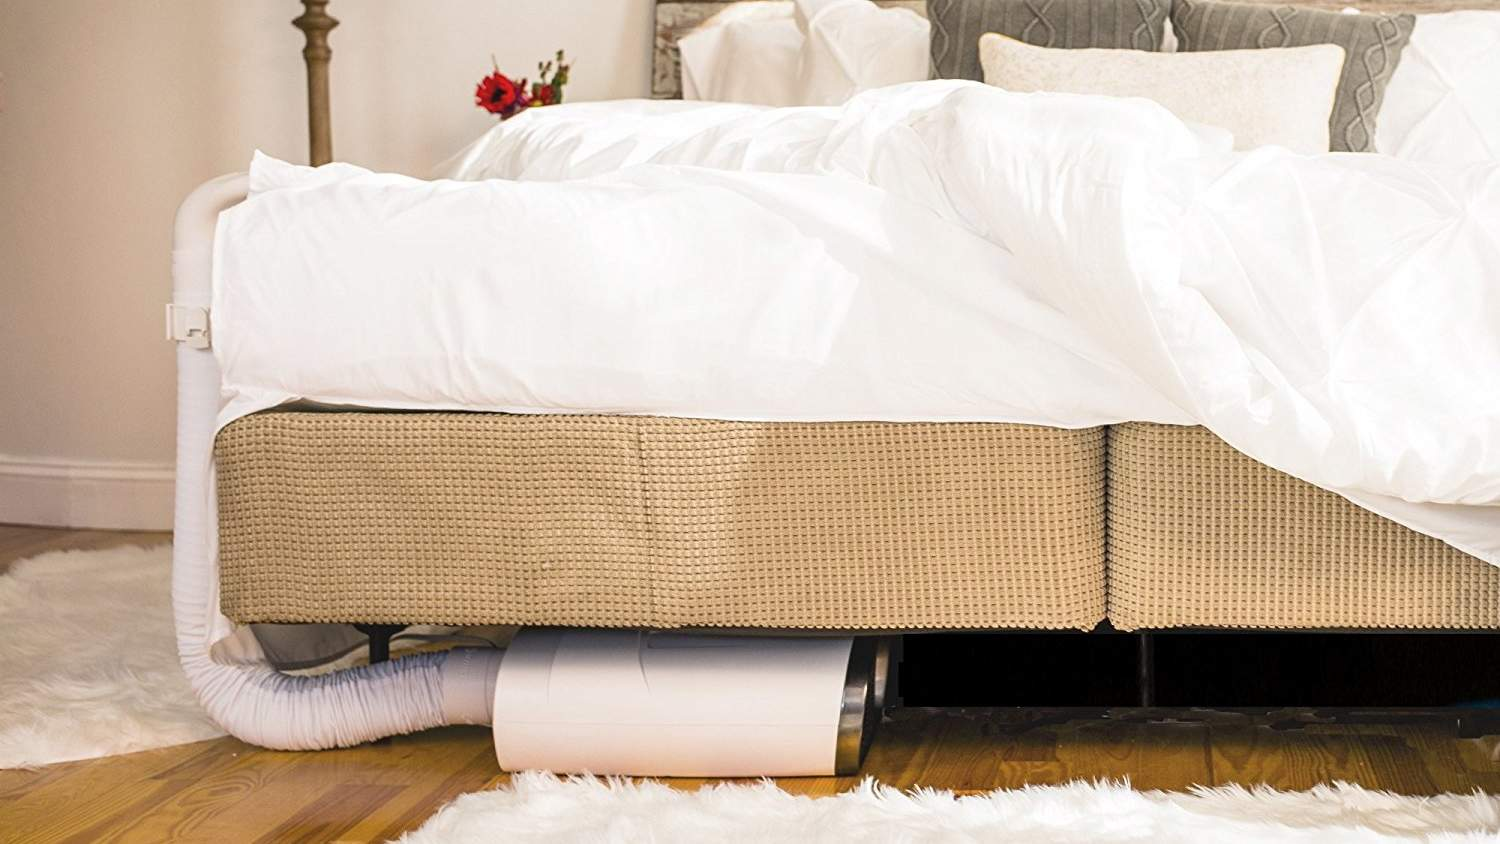 This Bedroom Appliance Might Save Your Relationship (and It Has Nothing to Do With Sex)